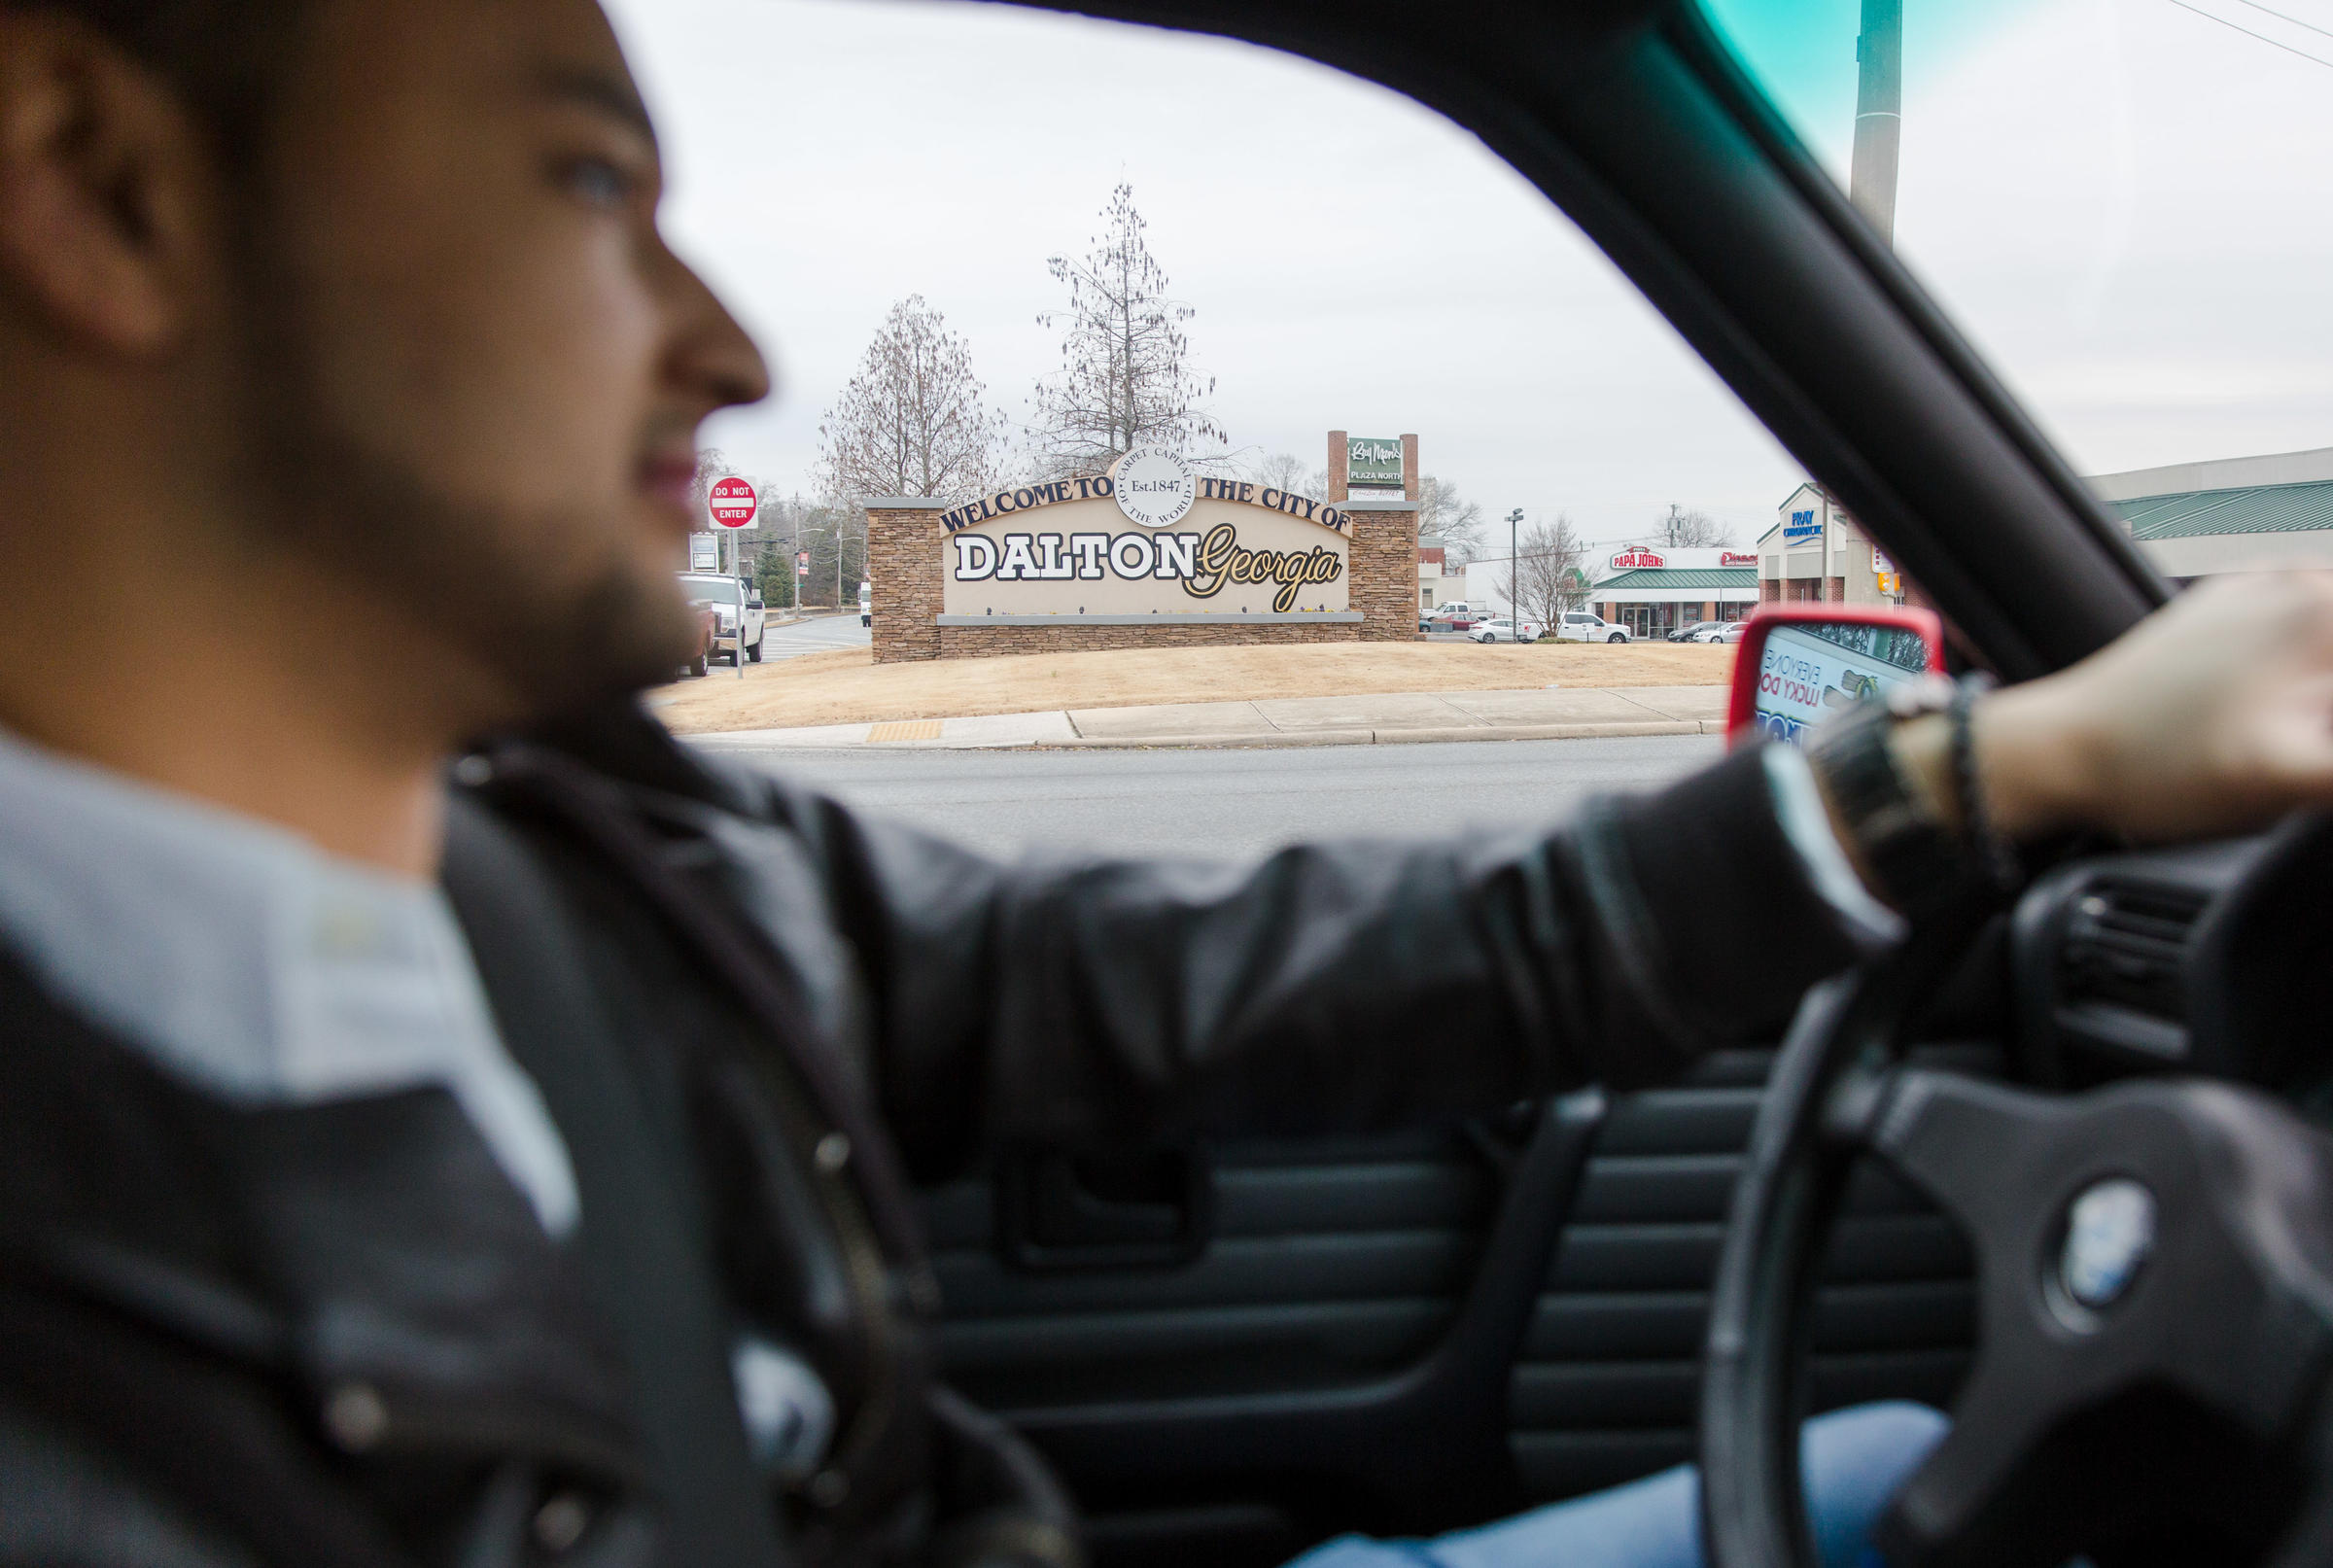 Olvera 26 behind the wheel in Dalton Ga. where he's lived most of his life. Olvera's DACA status allows him to have a driver's license